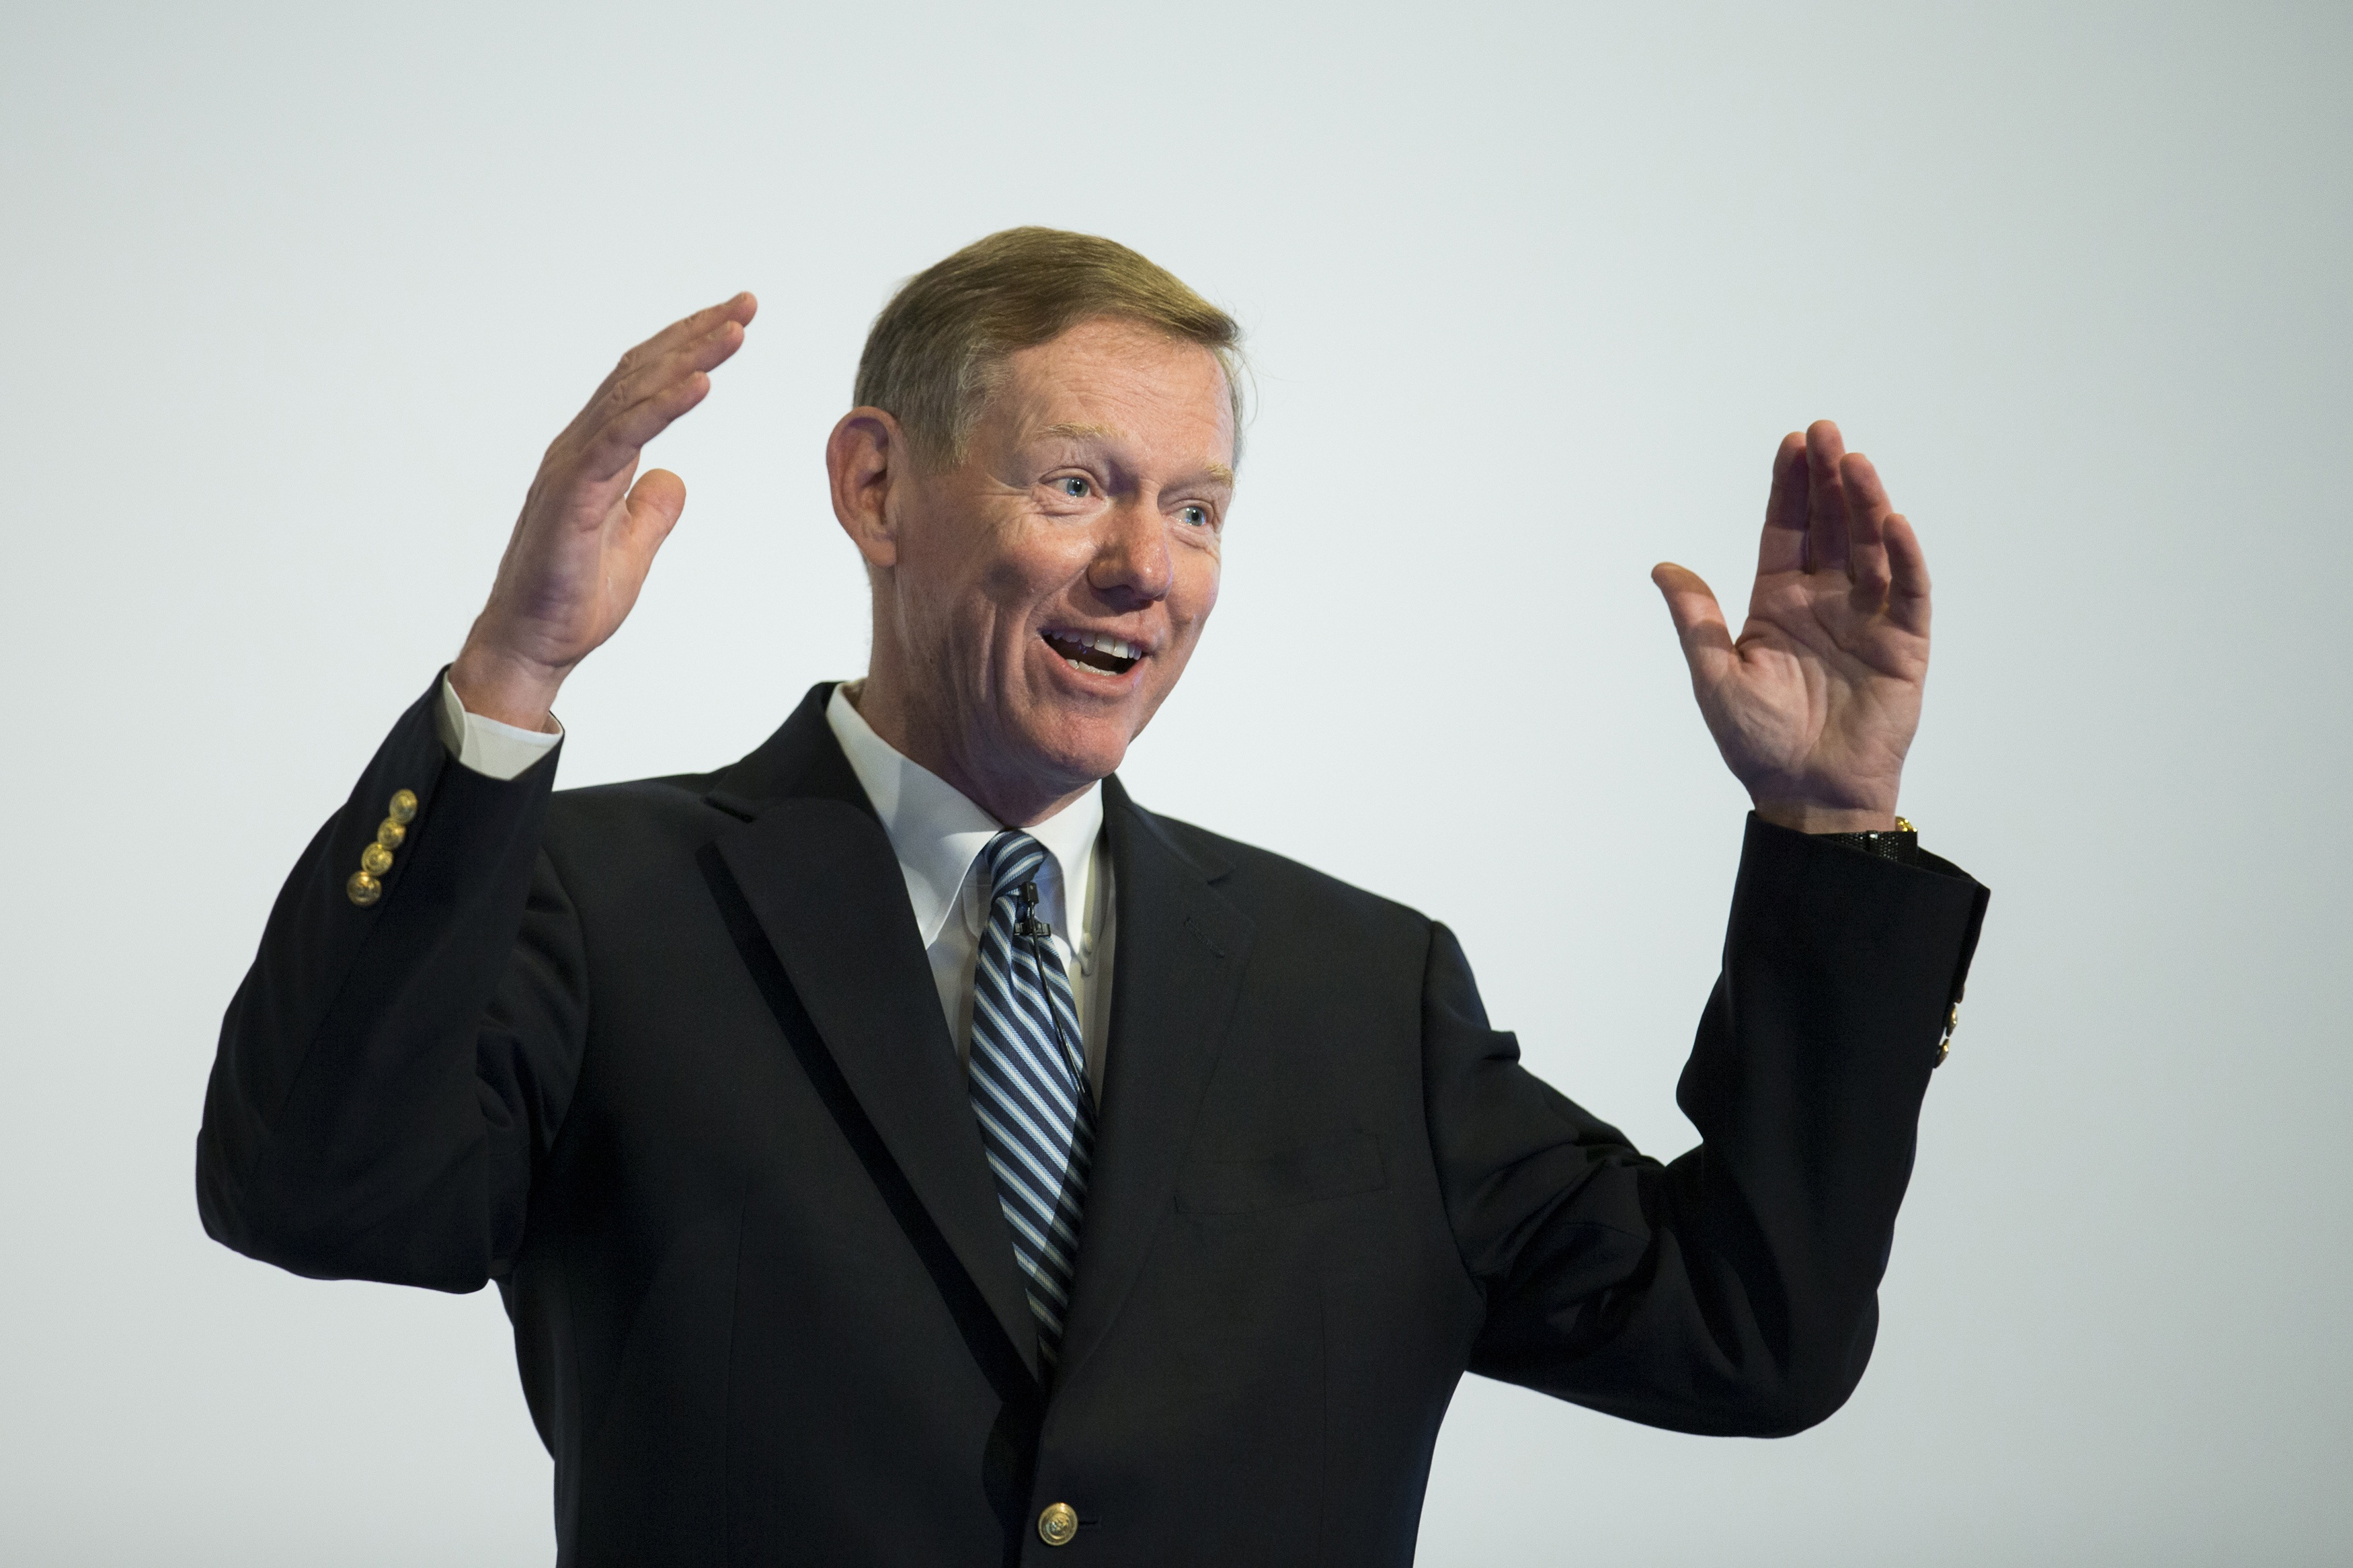 Alan Mulally, president and CEO of Ford Motor Co., is reportedly the frontrunner to replace Steve Ballmer as CEO of Microsoft.